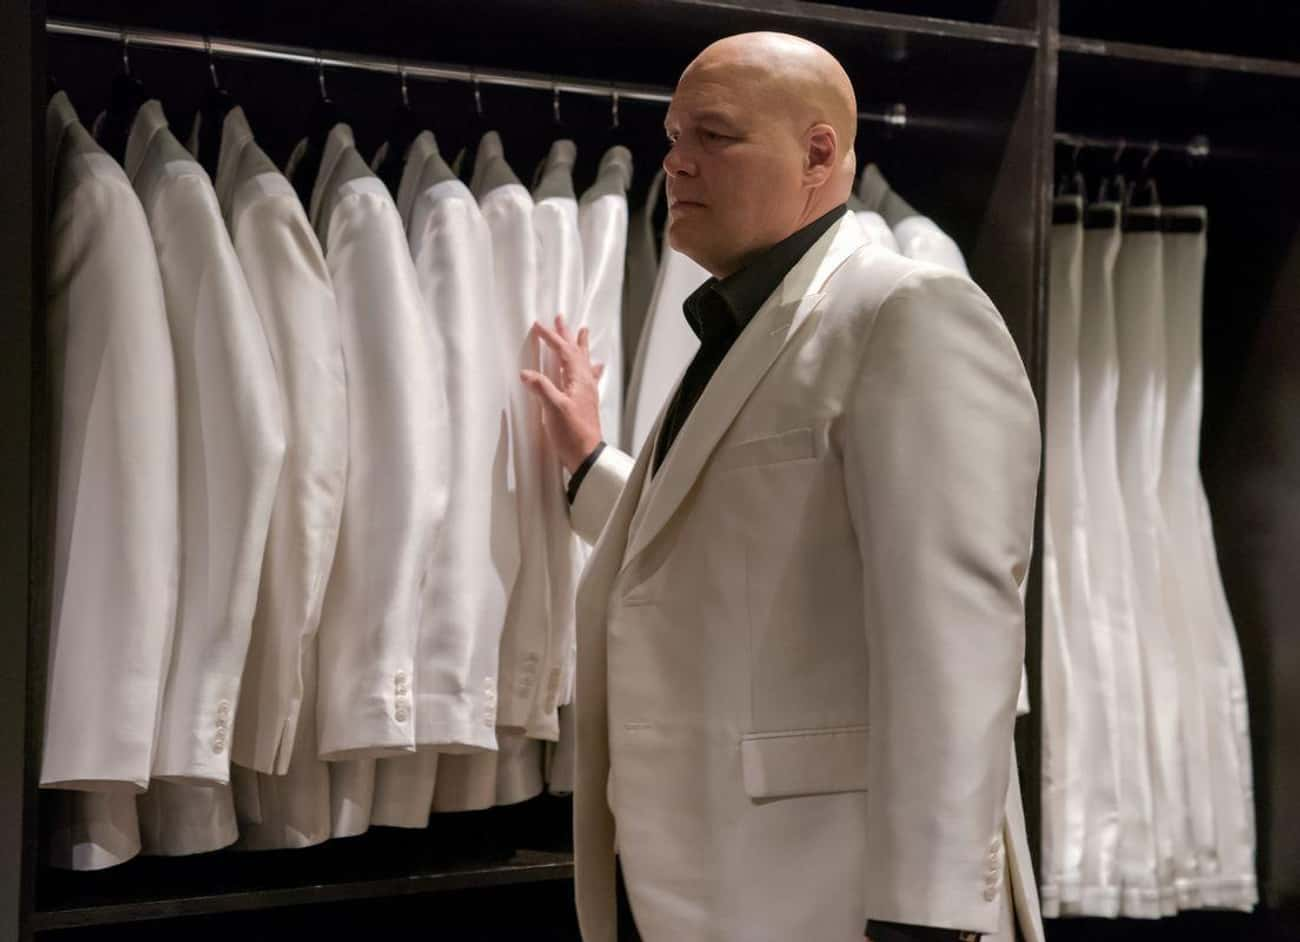 The Kingpin Should Confront That Other Red-Clad Superhero From New York